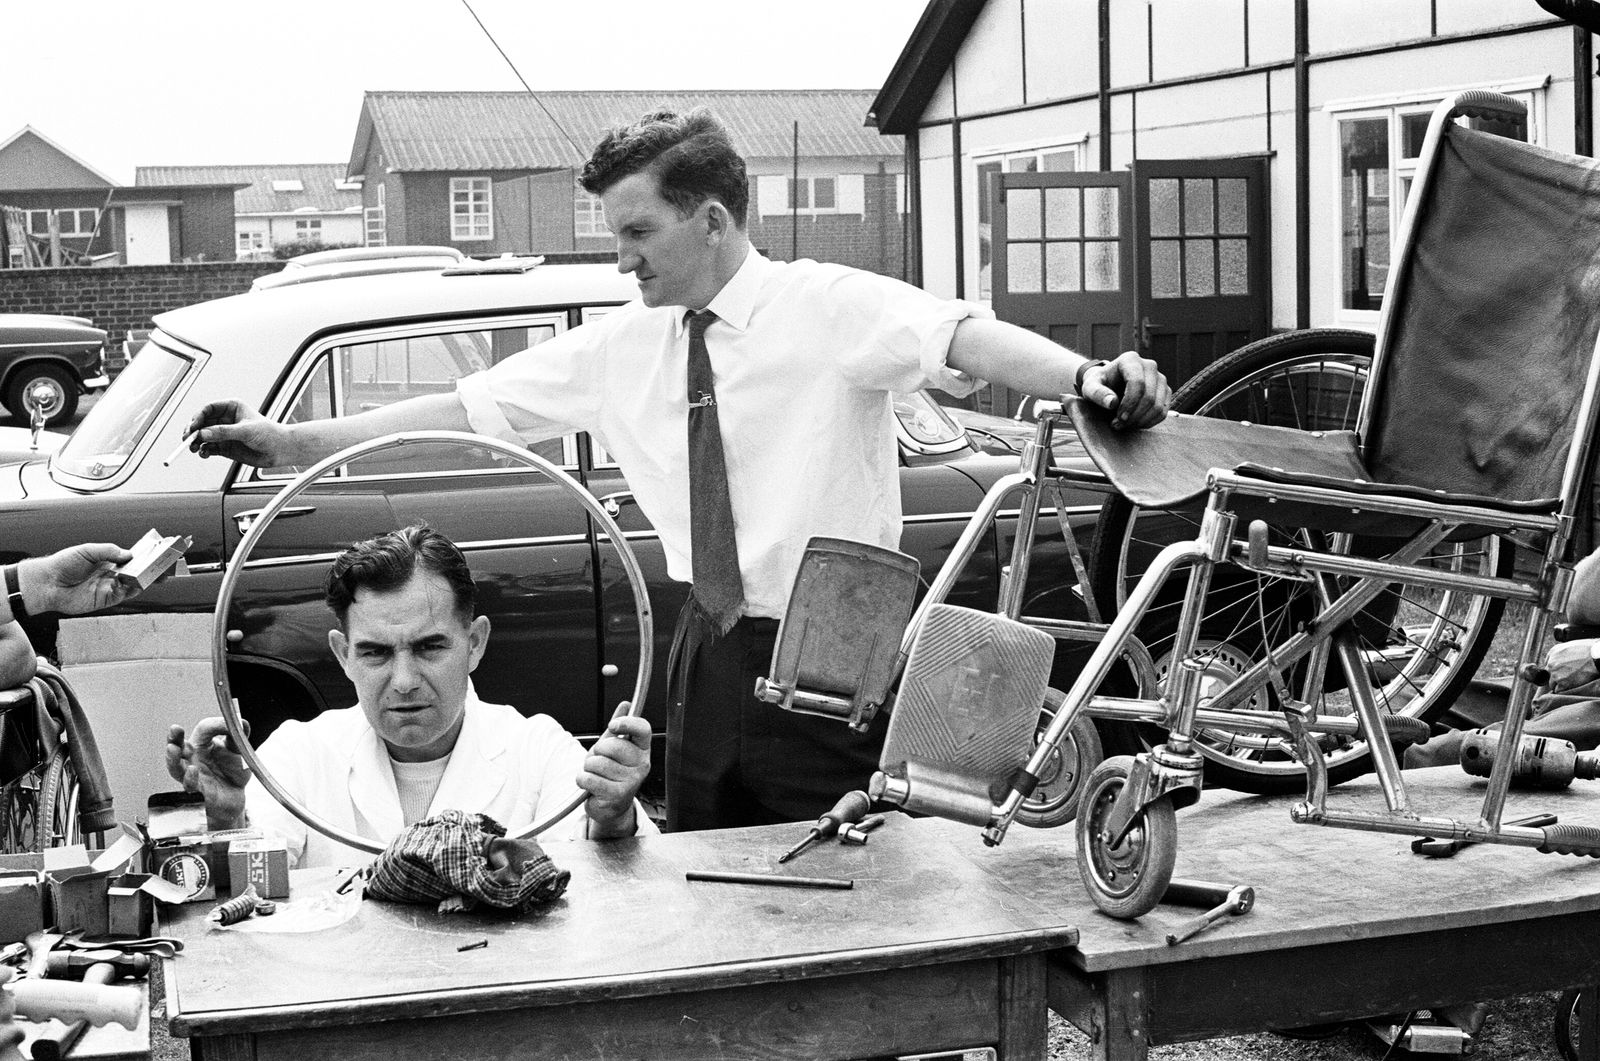 Engineers work on equipment for Paralympic Athletes training at Stoke Mandeville, ahead of the 1964 Paralympics to be held in Tokyo, pictured 22nd July 1964.